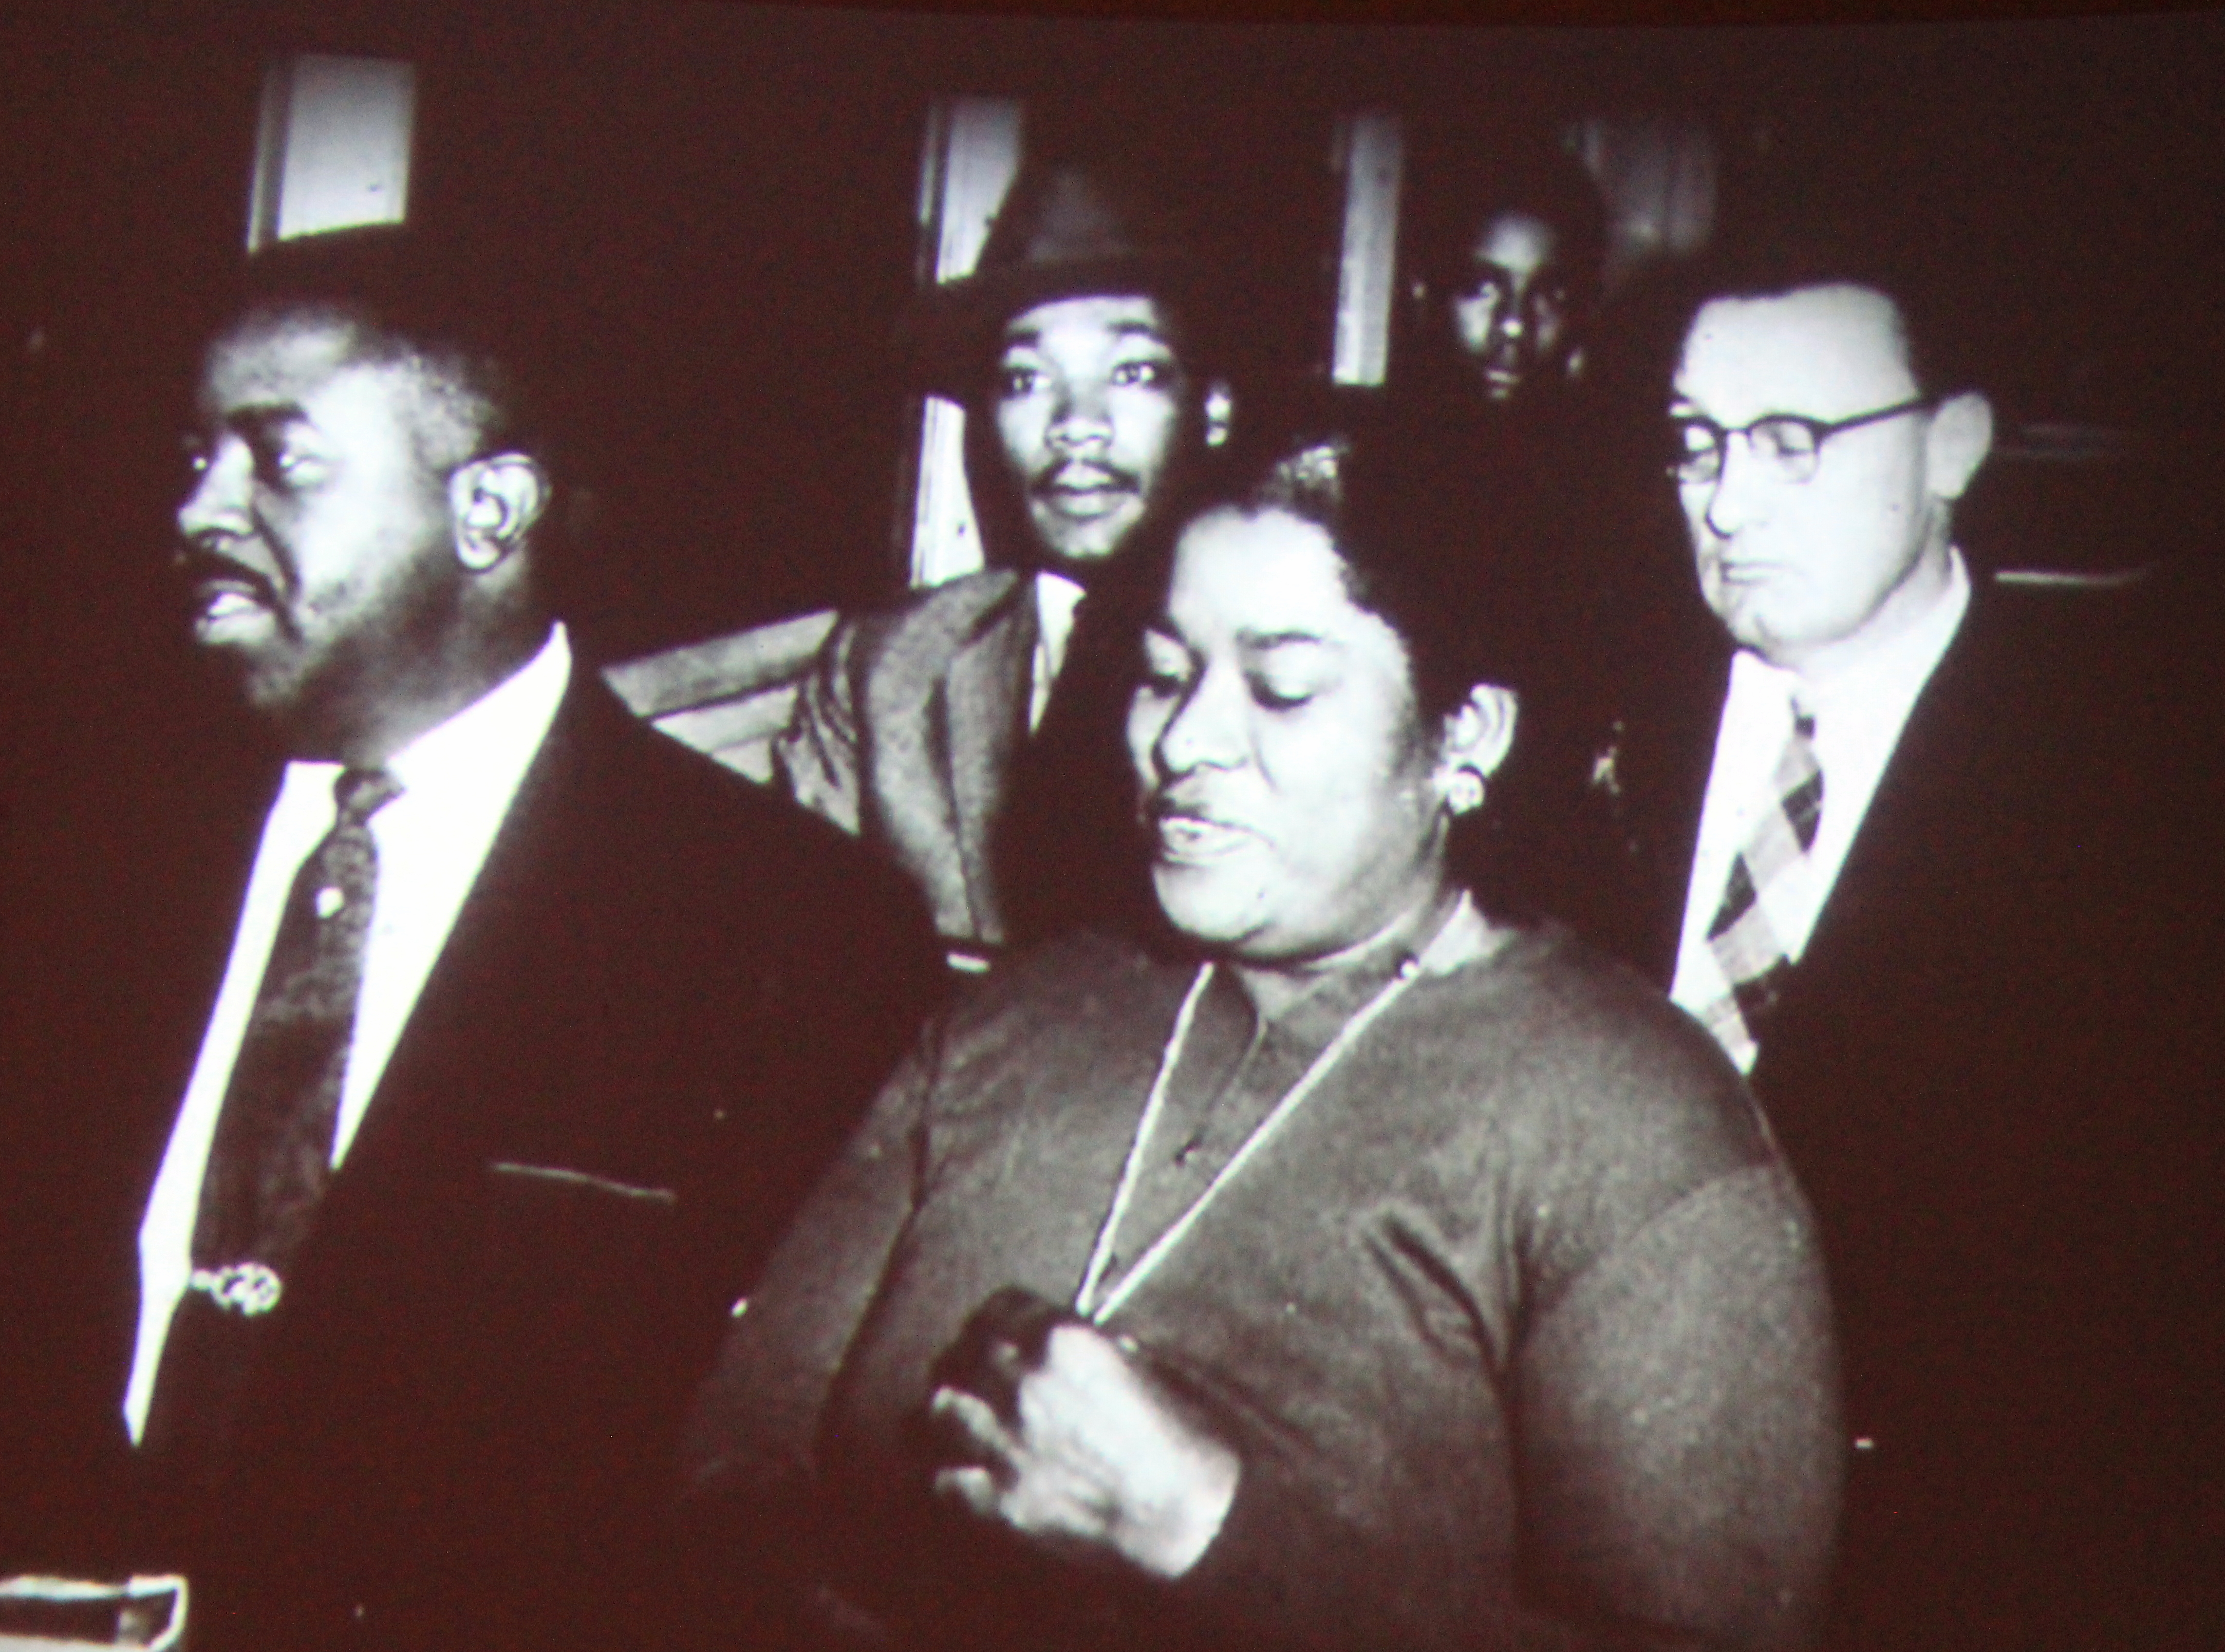 Martin Luther King, Jr. sits on a bus next to a white man